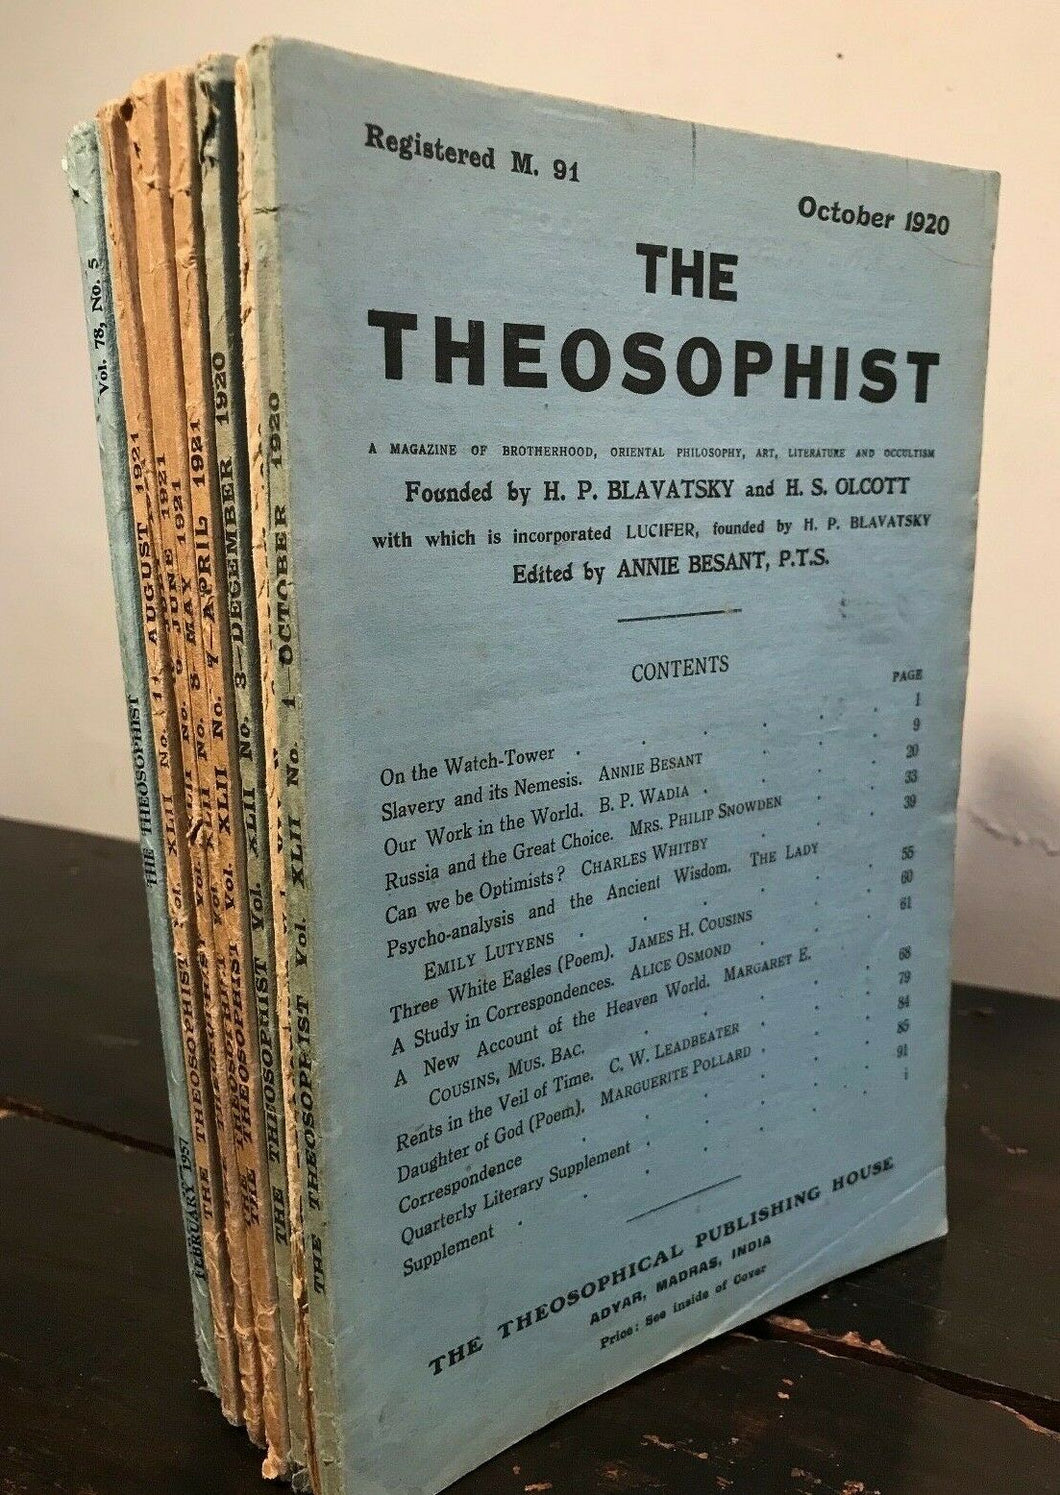 THE THEOSOPHIST - 15 Original Journals, 1920-59 - BLAVATSKY, BESANT, LEADBETTER